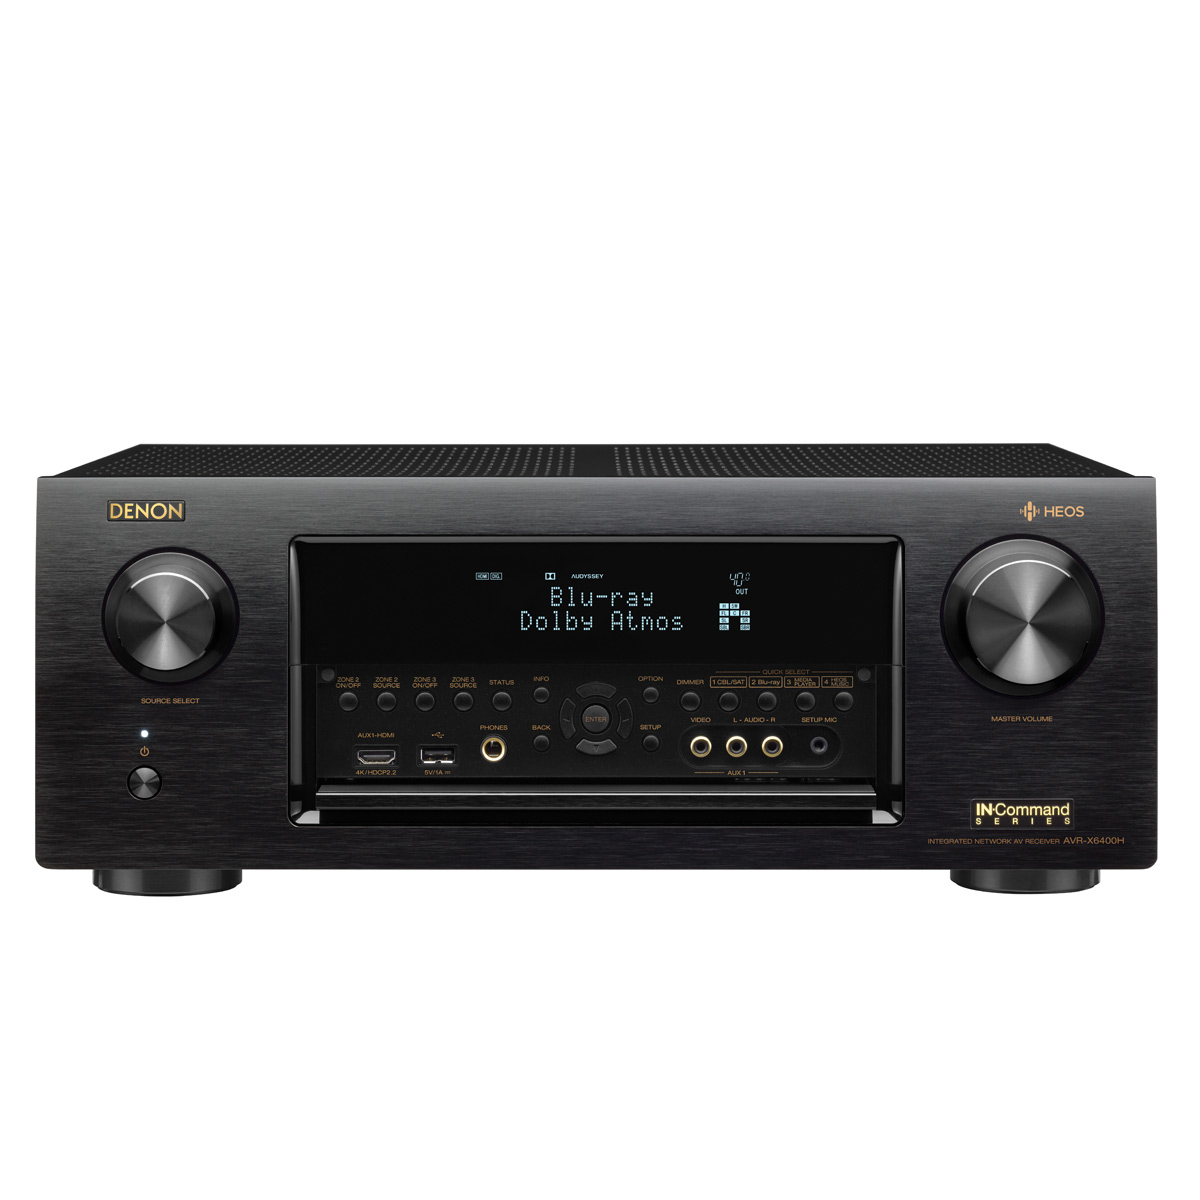 Denon AVR-X6400H 11.2 Channel Full 4K Ultra HD Network AV Receiver with HEOS by Denon